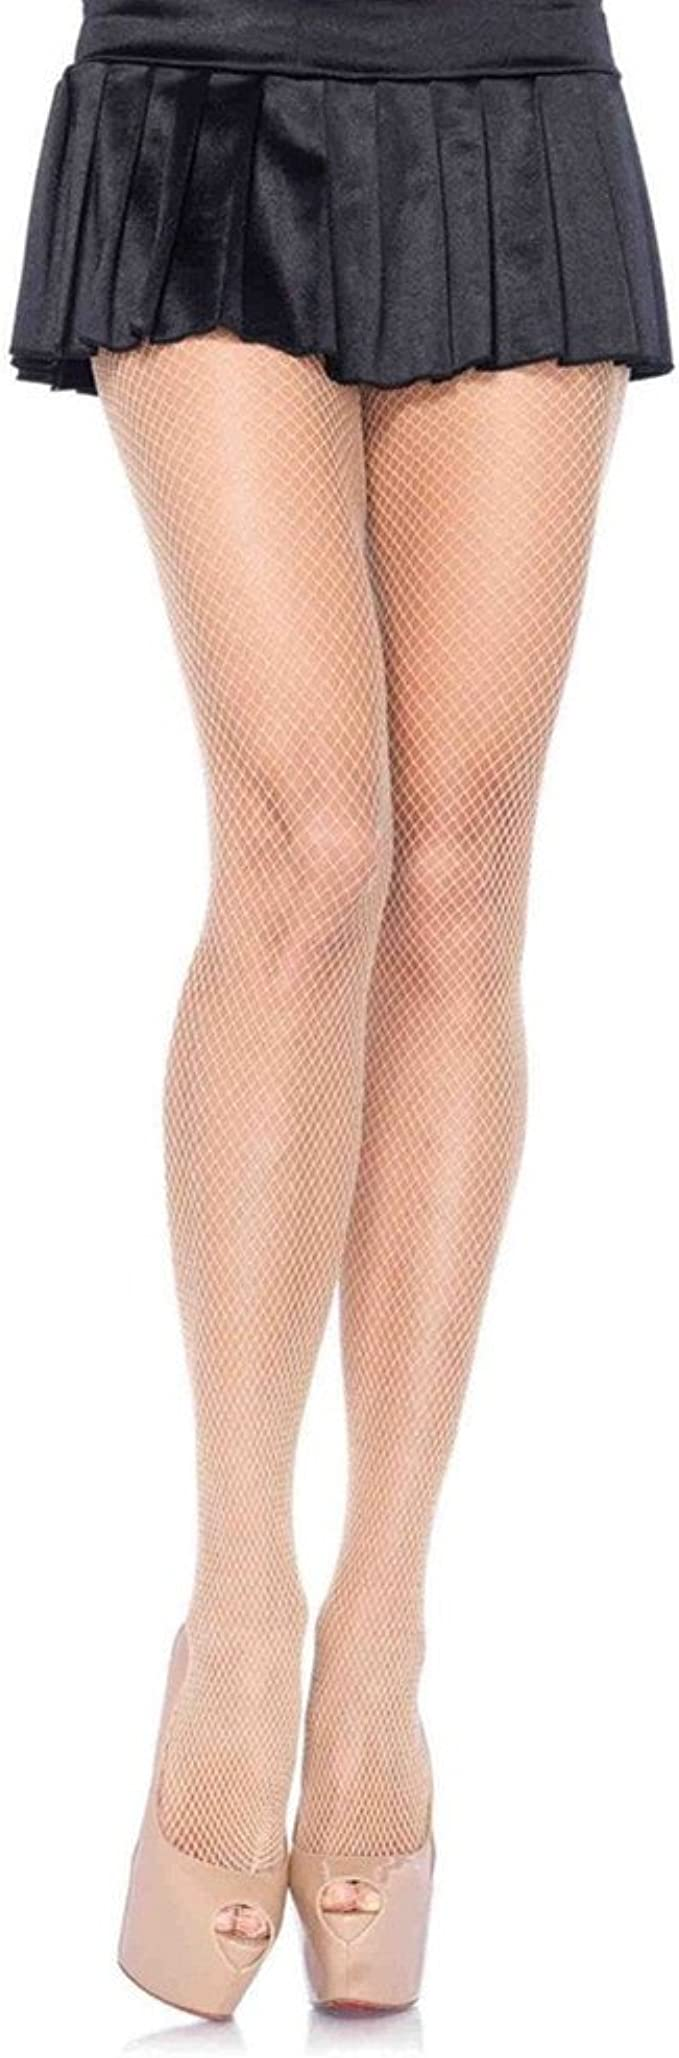 Harewom 4PCS Fishnet Stockings Sheer Mesh Thigh High Pantyhose Lace Tights for Women